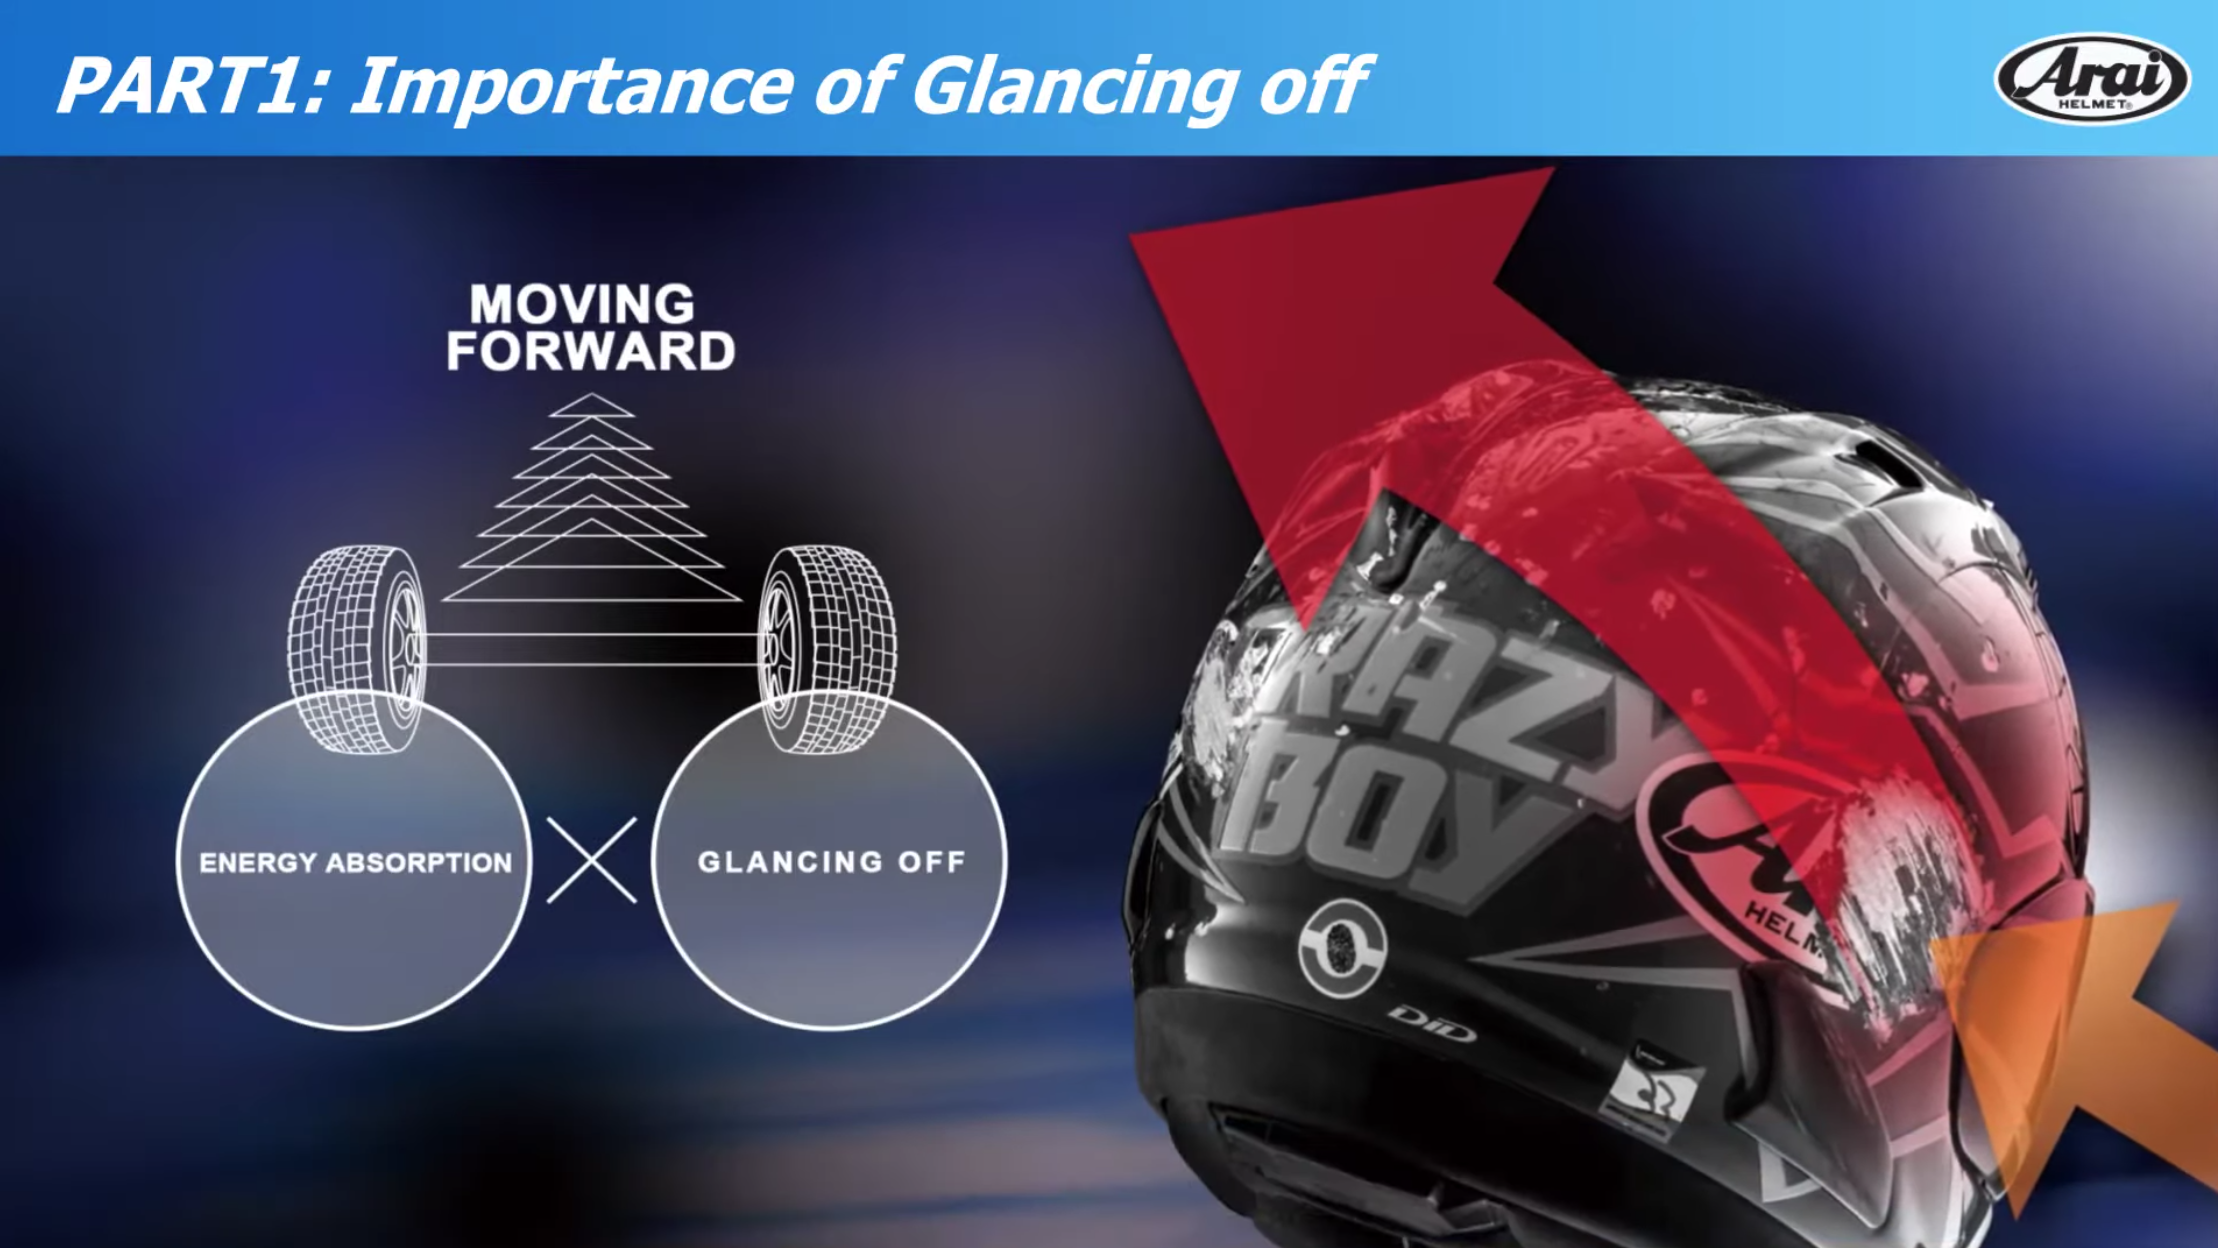 Arai Helmet Tech Video